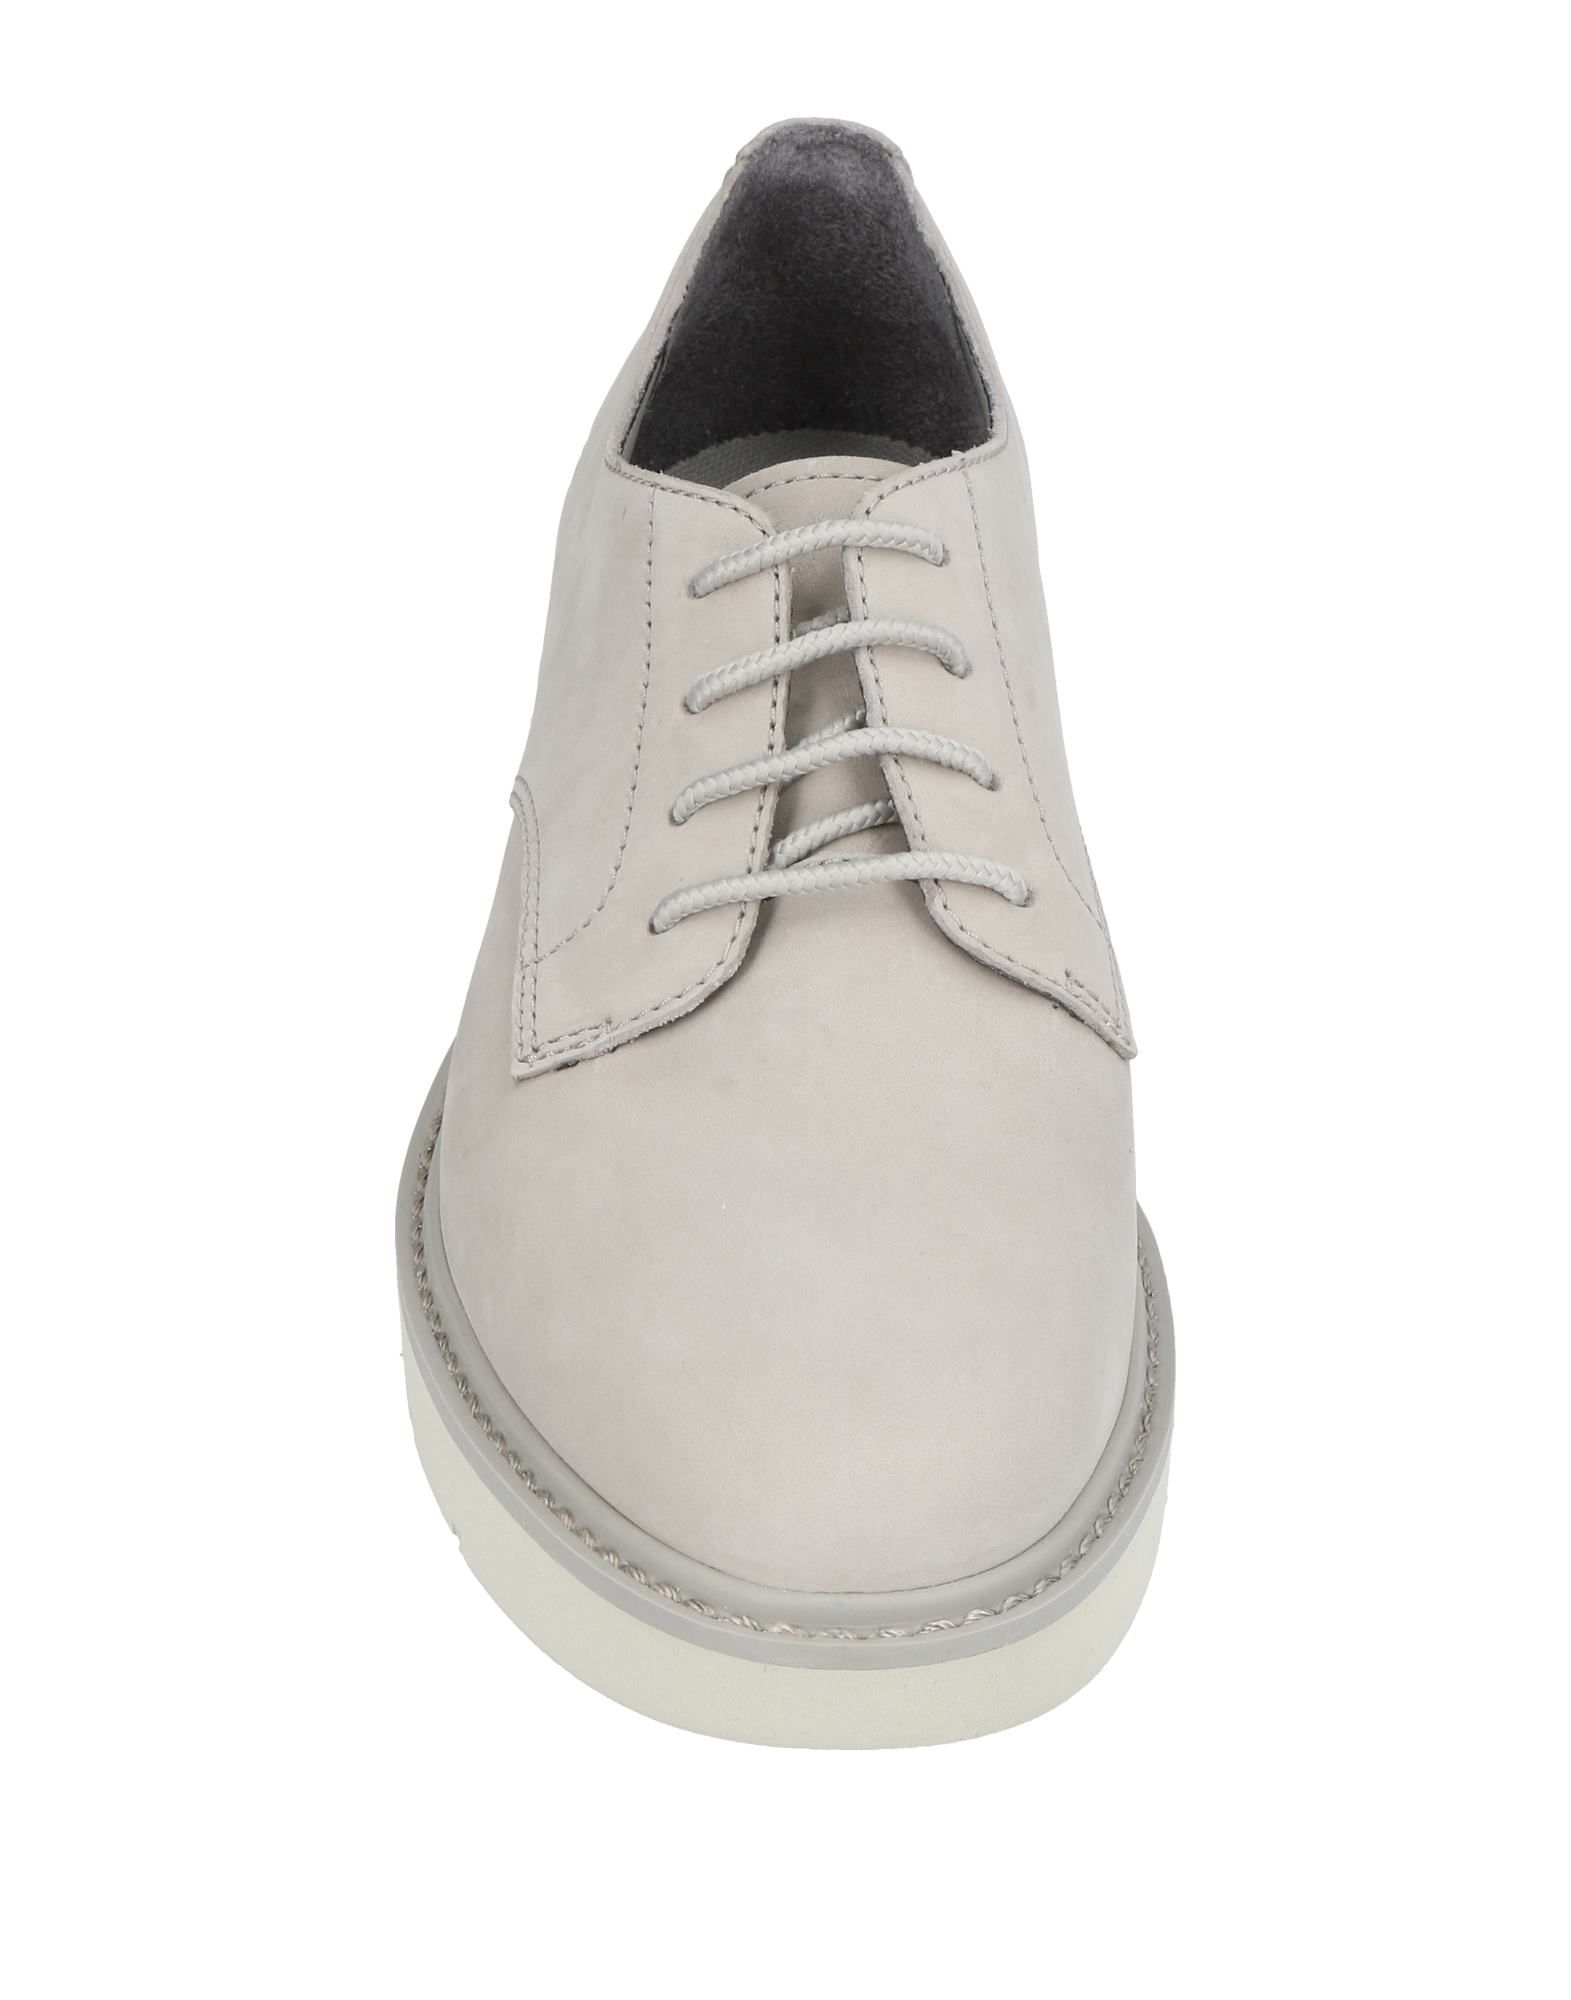 Chaussures À Lacets Timberland Femme - Chaussures À Lacets Timberland sur